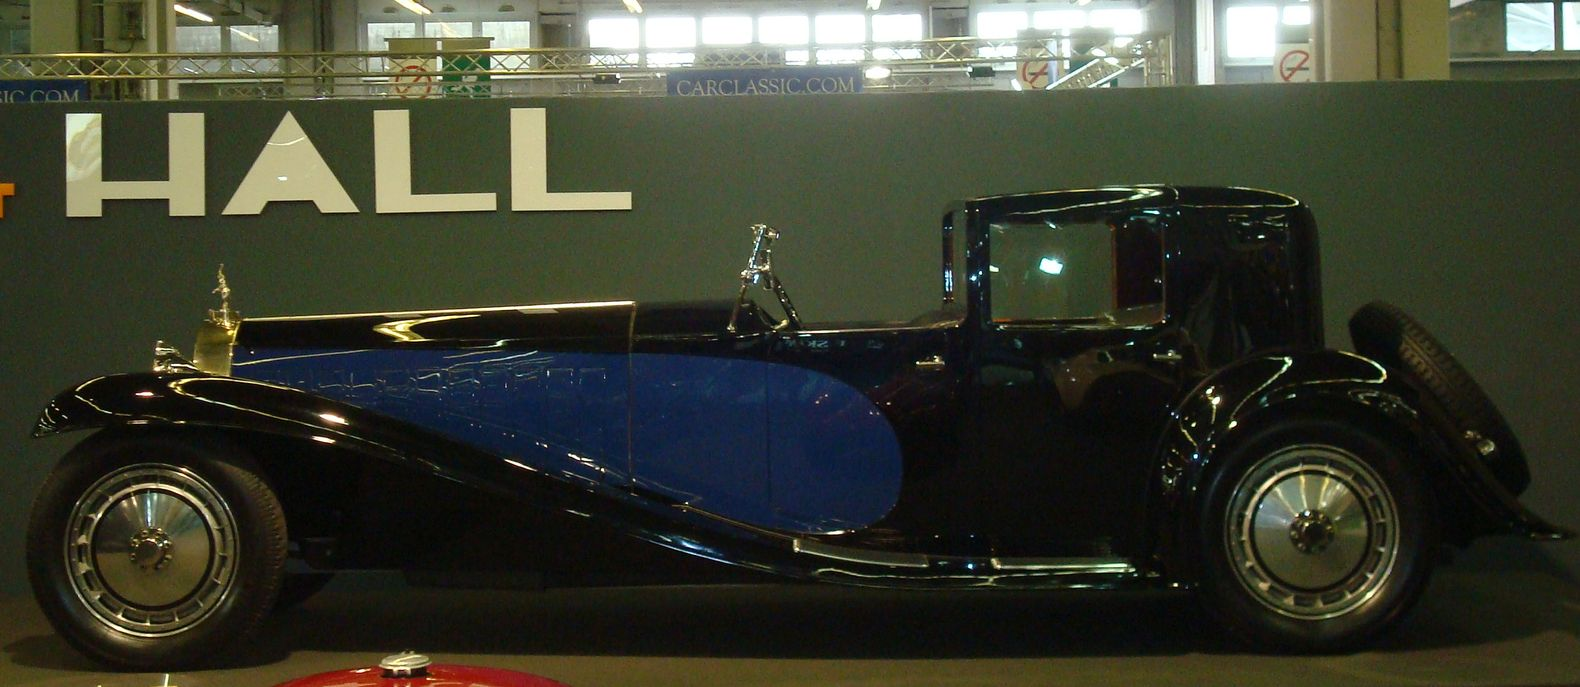 bugatti royale france voiture de luxe limousine bugatti france. Black Bedroom Furniture Sets. Home Design Ideas